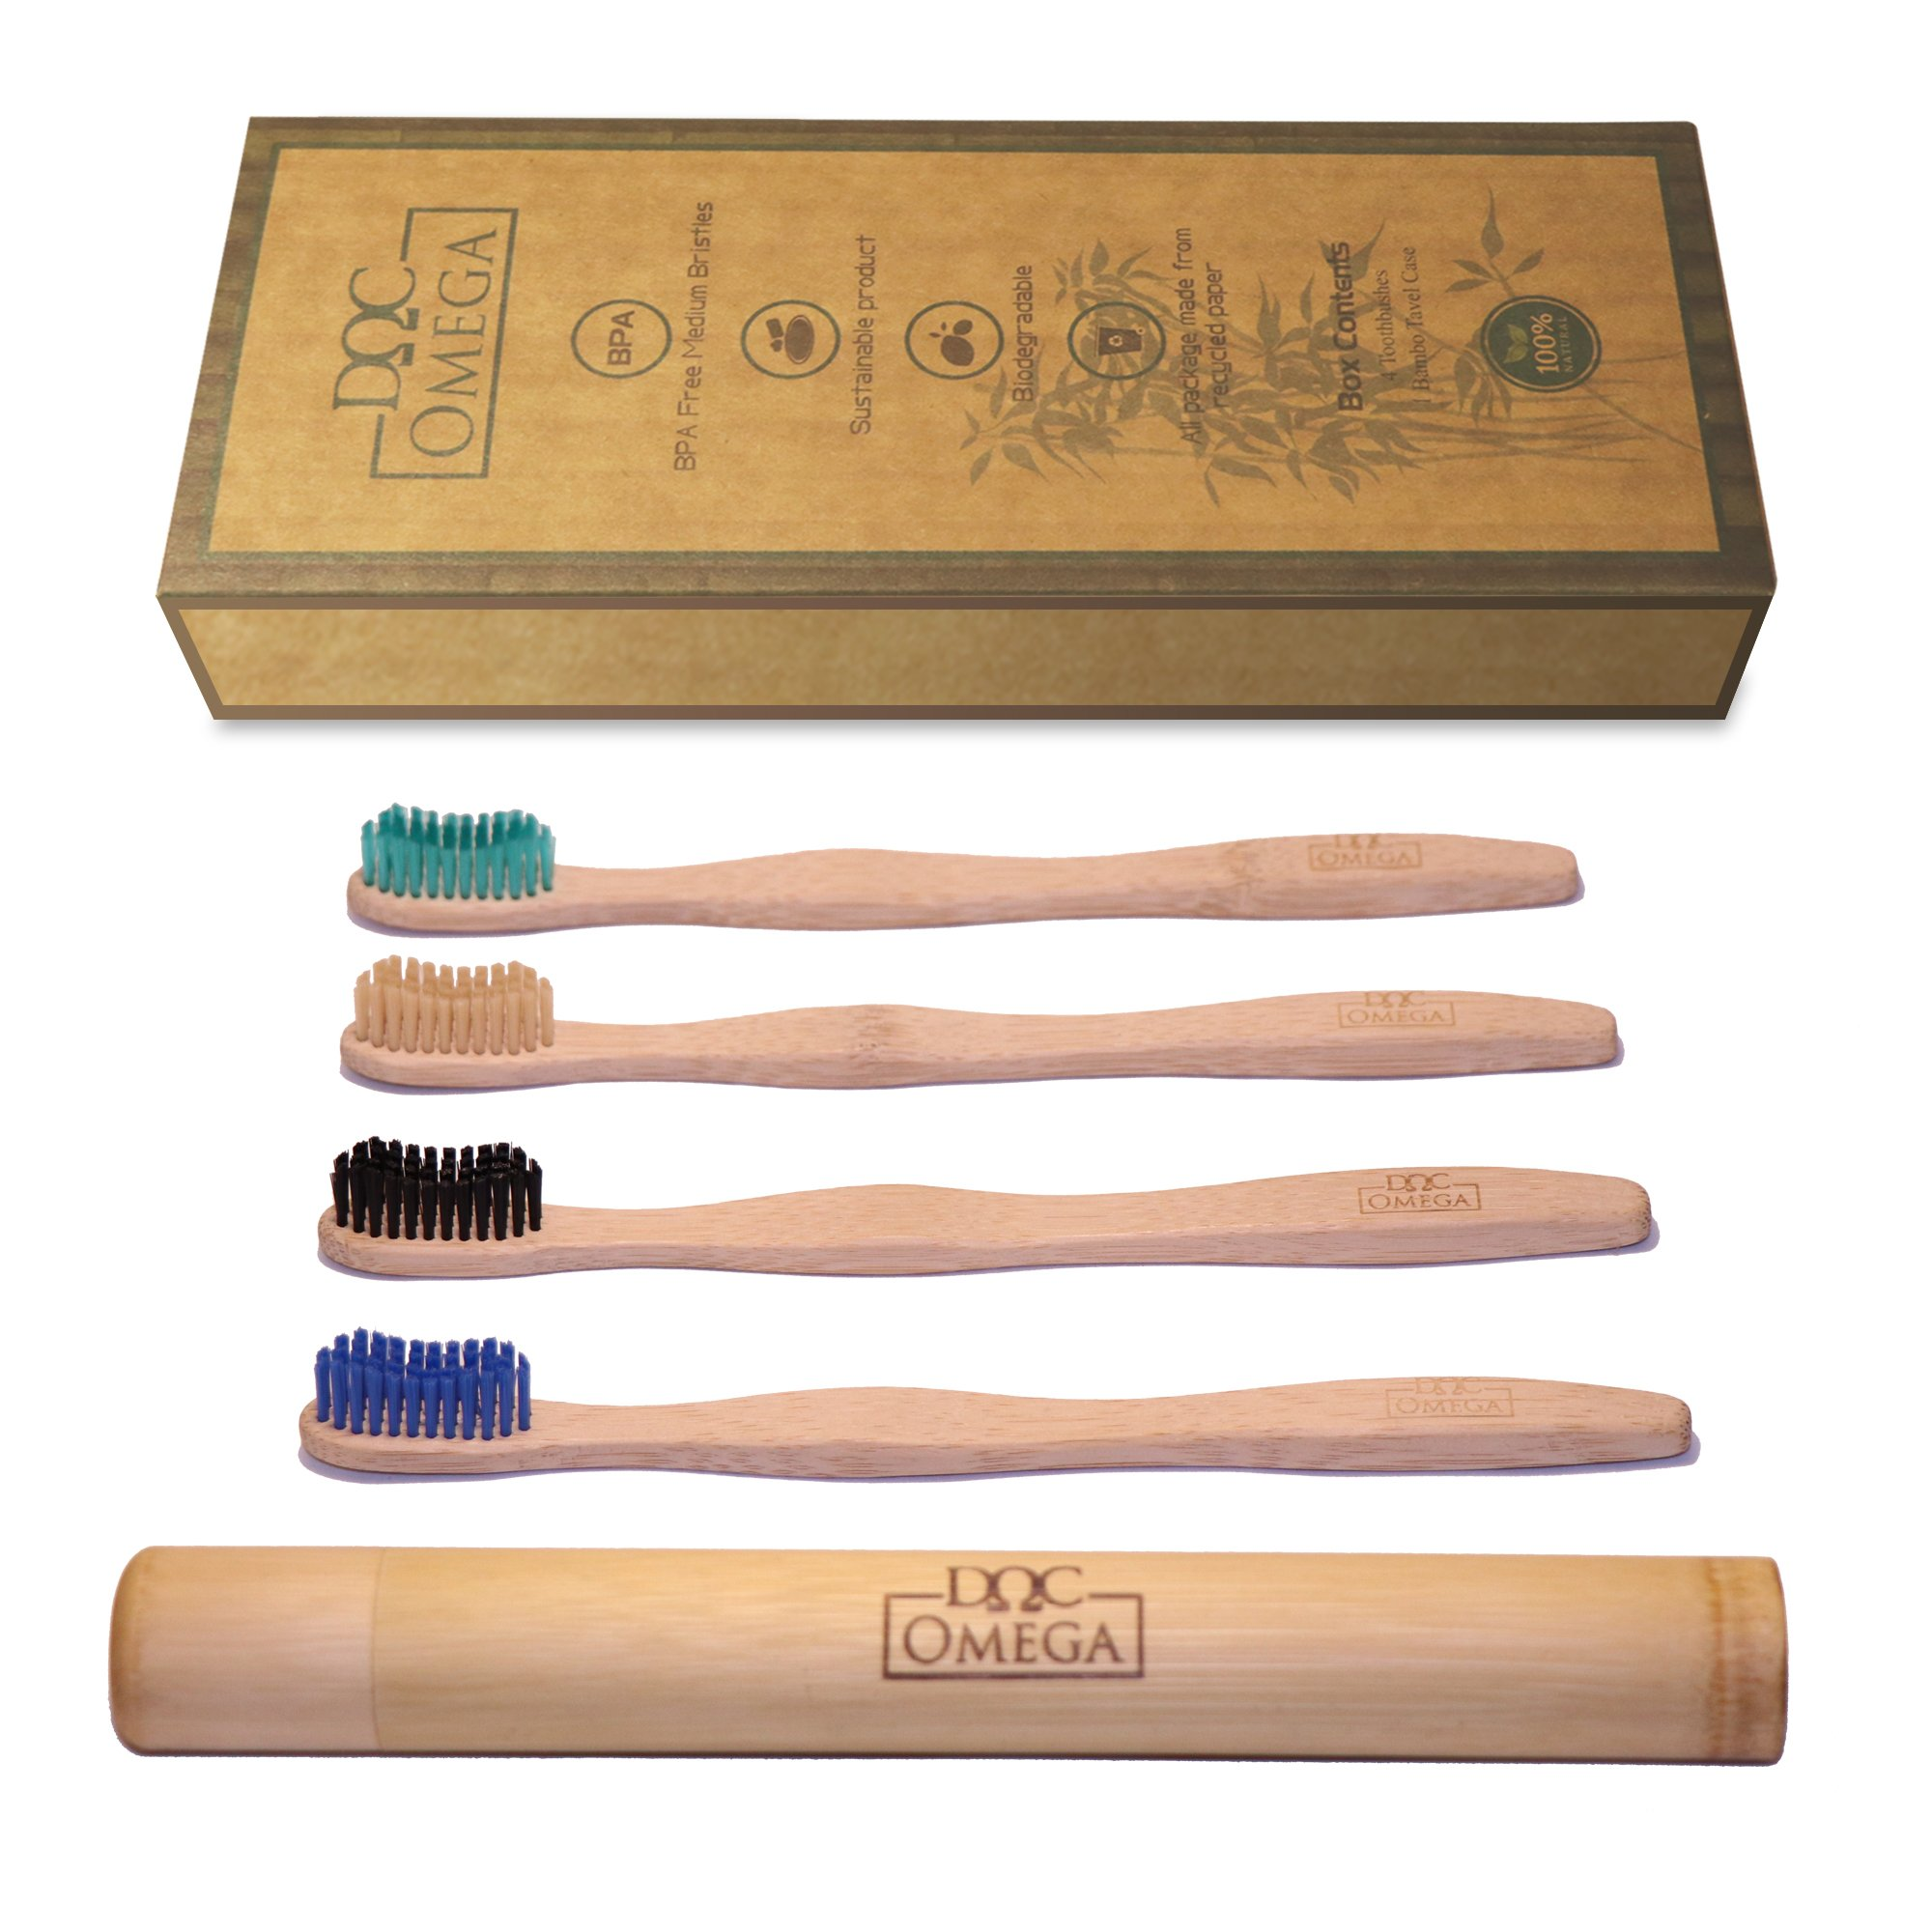 Doc Omega 4 Biodegradable Medium Bamboo Toothbrushes and 1 Bamboo Travel Case